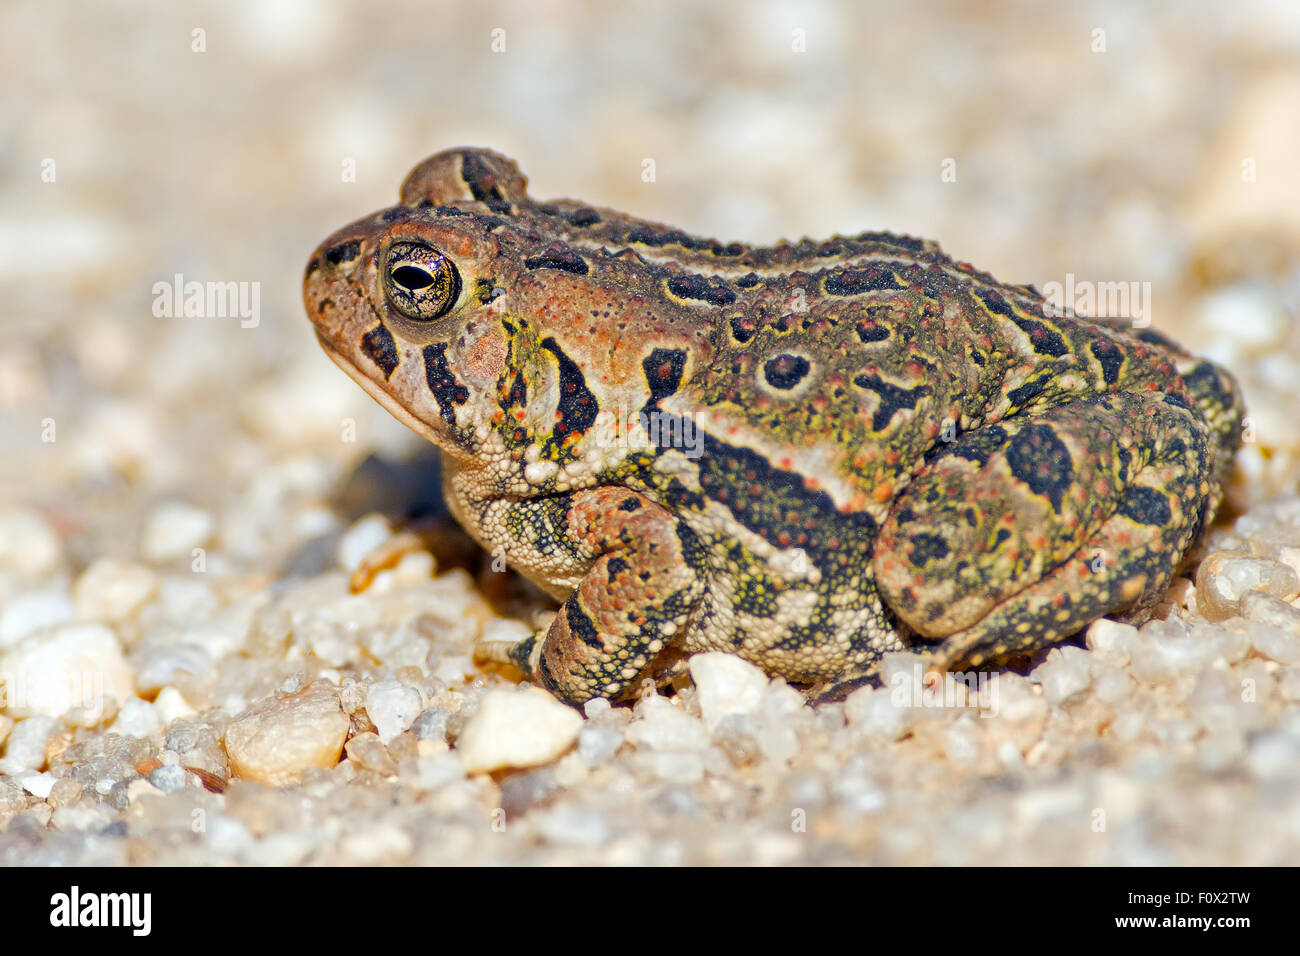 toad on the road stock photos toad on the road stock images alamy